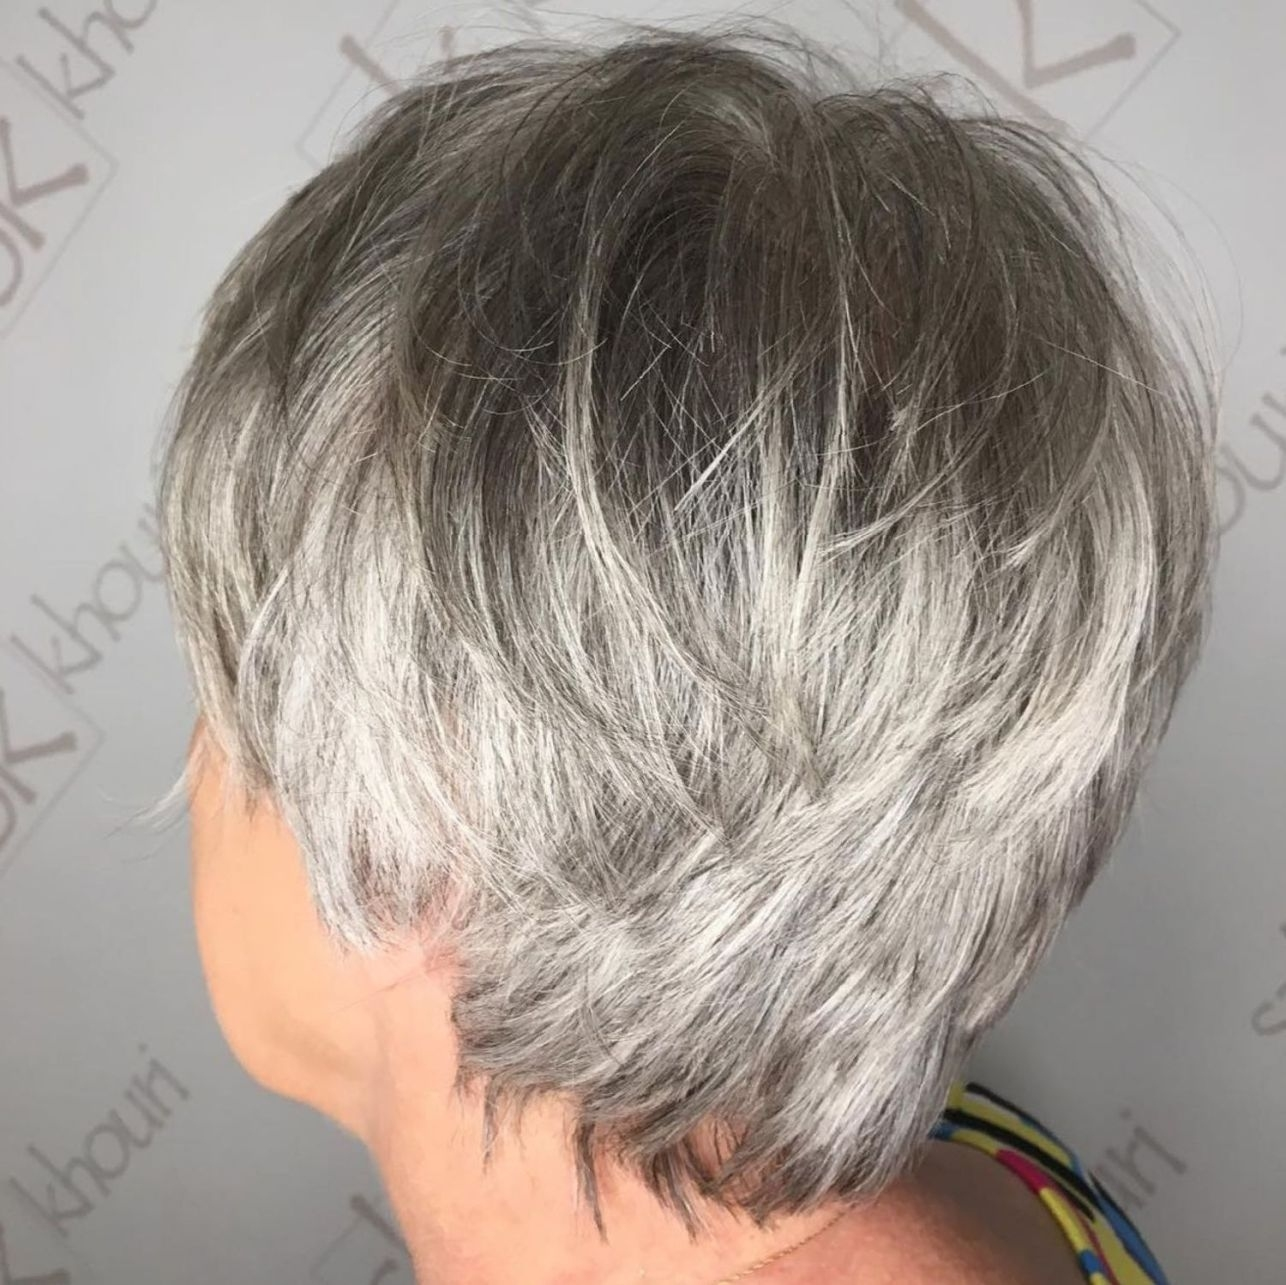 60 Gorgeous Gray Hair Styles | Hairstyles For Seniors In with regard to Hair Styles Fine Grey Hair